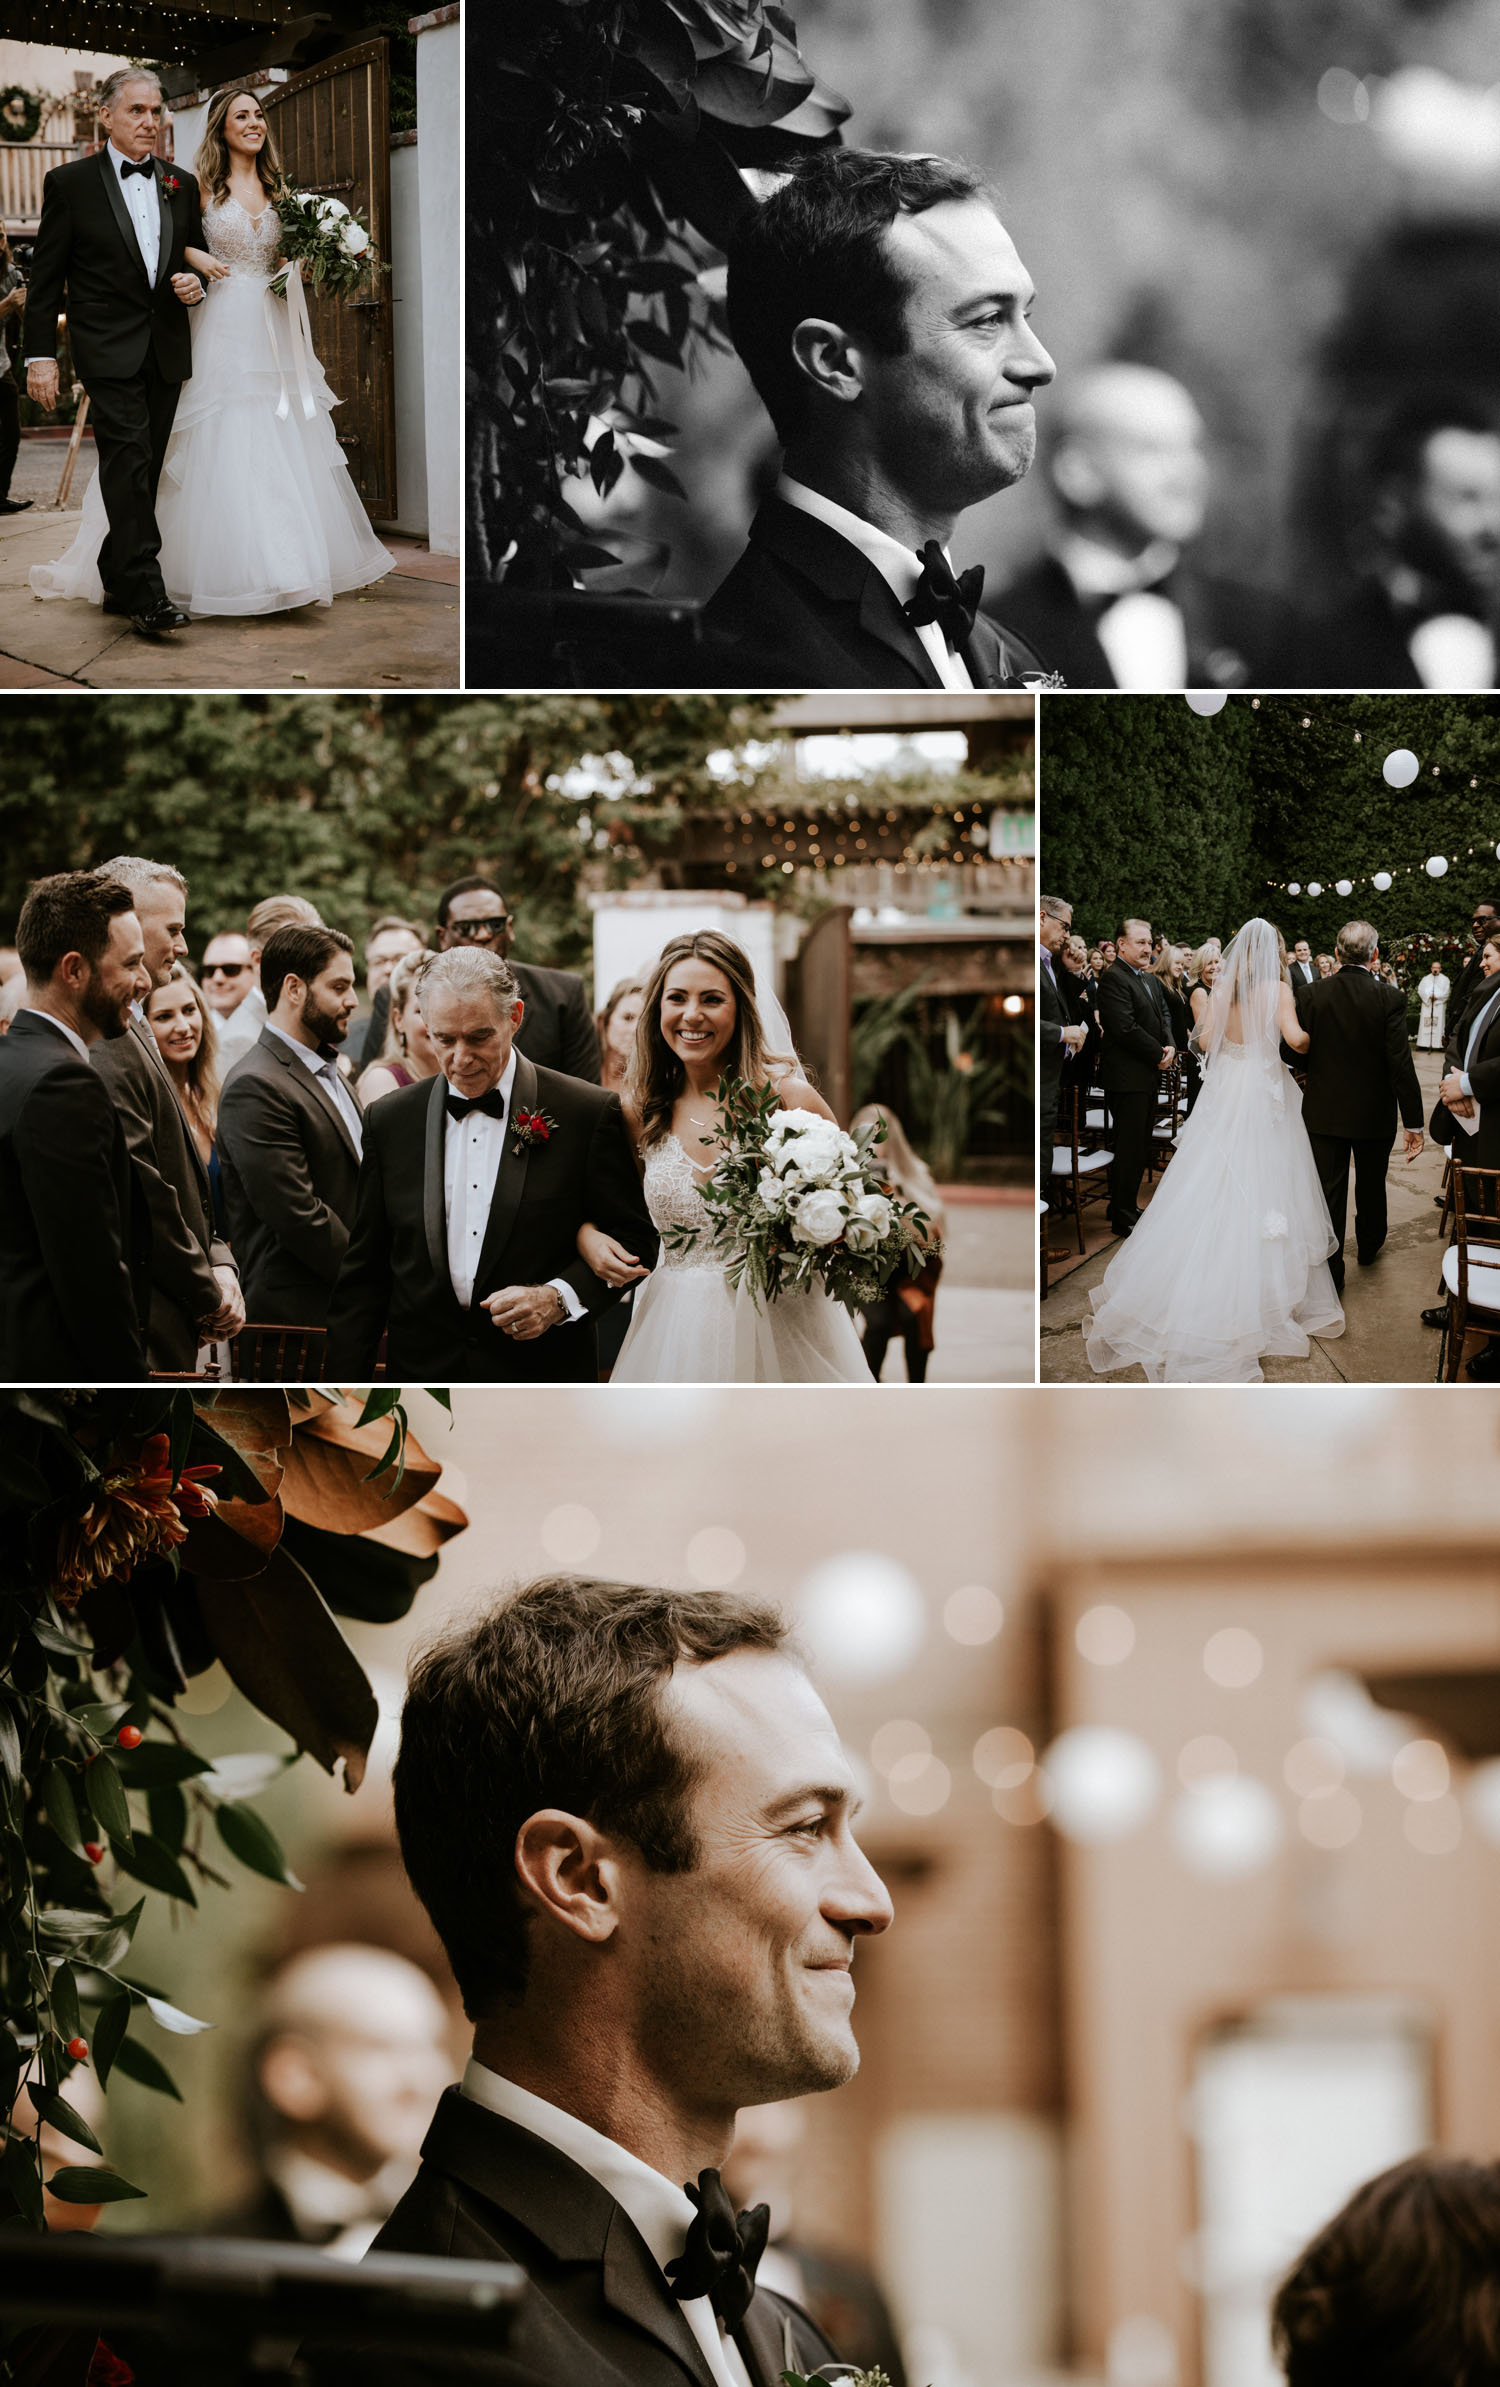 Holiday wedding at Franciscan Gardens in Orange County by Paige Nelson